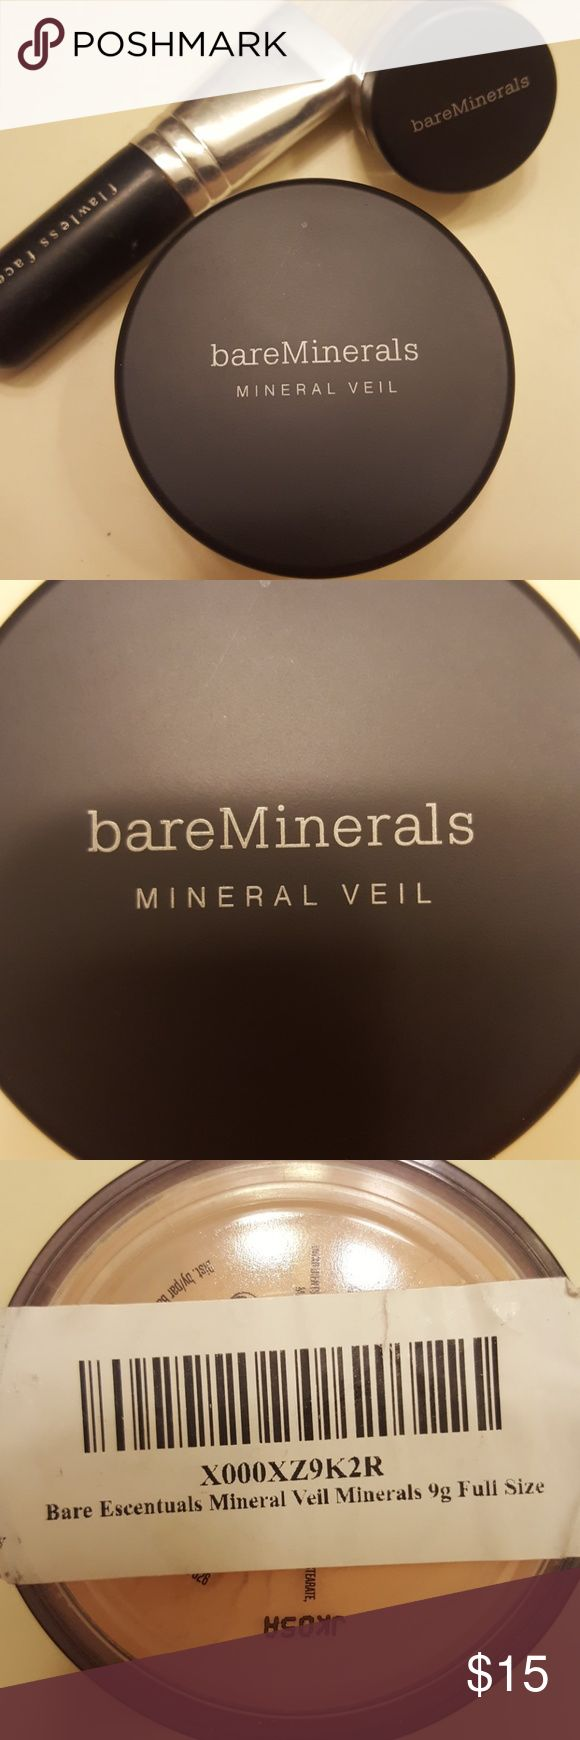 NWT! Bare Escentuals Mineral Veil NWT! BareMinerals Mineral Veil Purchased and didn't realize that I already had 3. No need for another at this time as I have plenty. Originally purchased through Amazon for about $19. Full Size 9g Bare Escentuals Makeup Face Powder